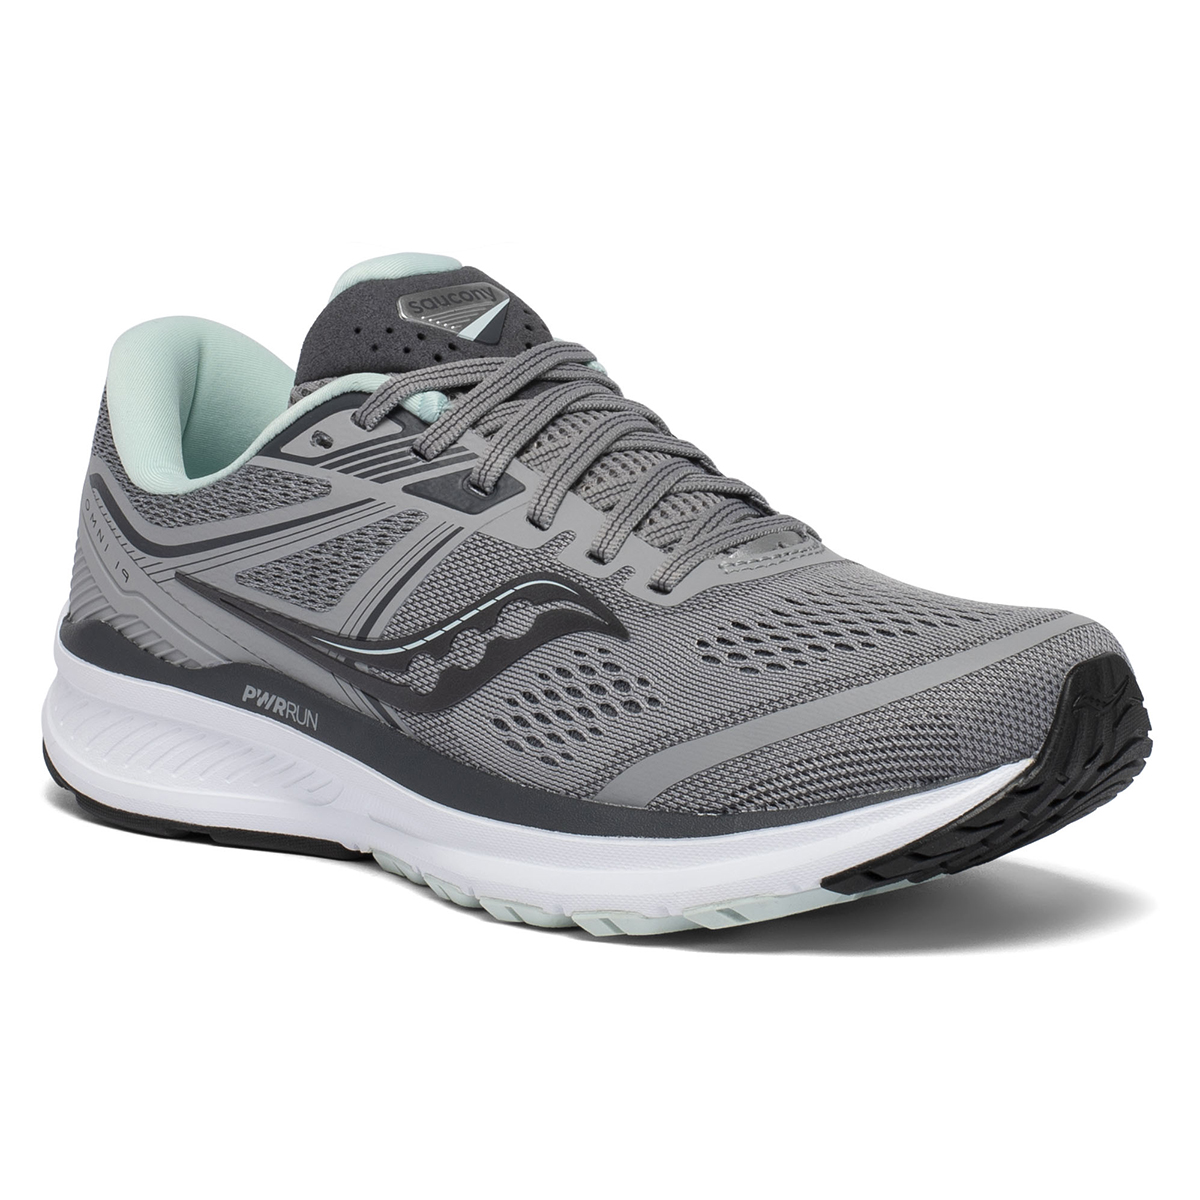 Women's Saucony Omni 19 Running Shoe - Color: White Mutant - Size: 5 - Width: Wide, White Mutant, large, image 5